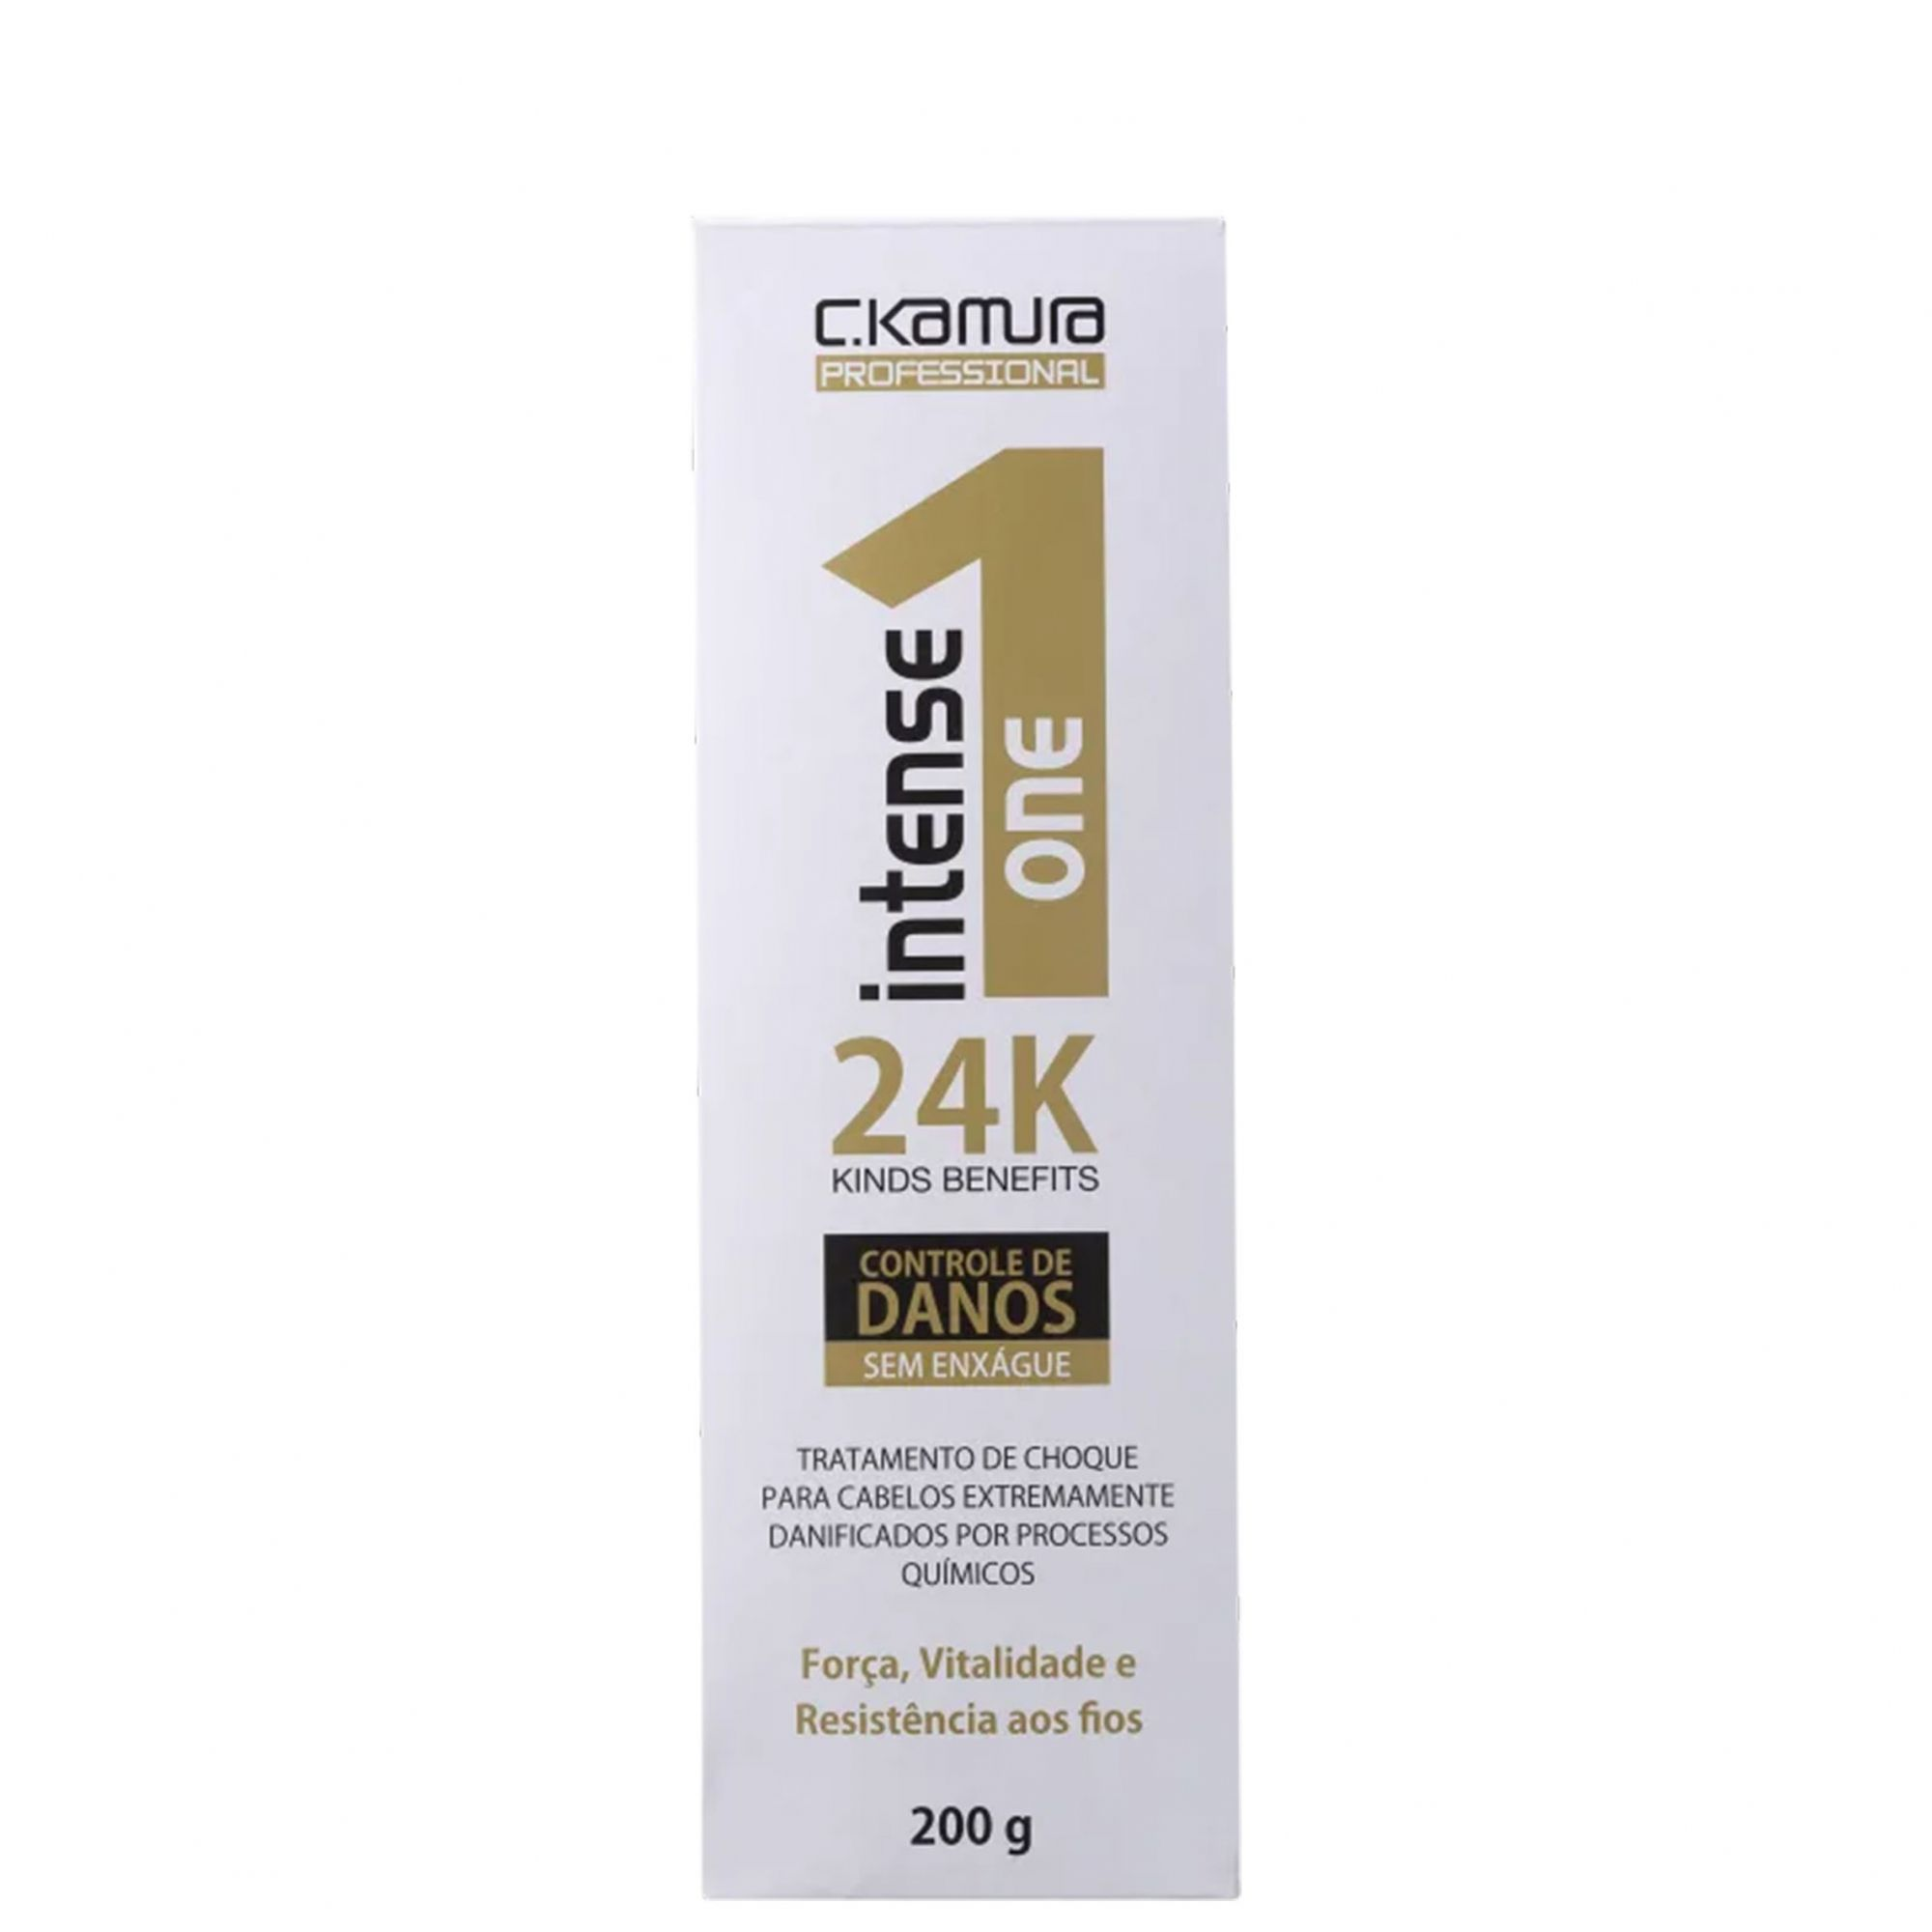 C.Kamura Intense One 24k Leave-In 200g.